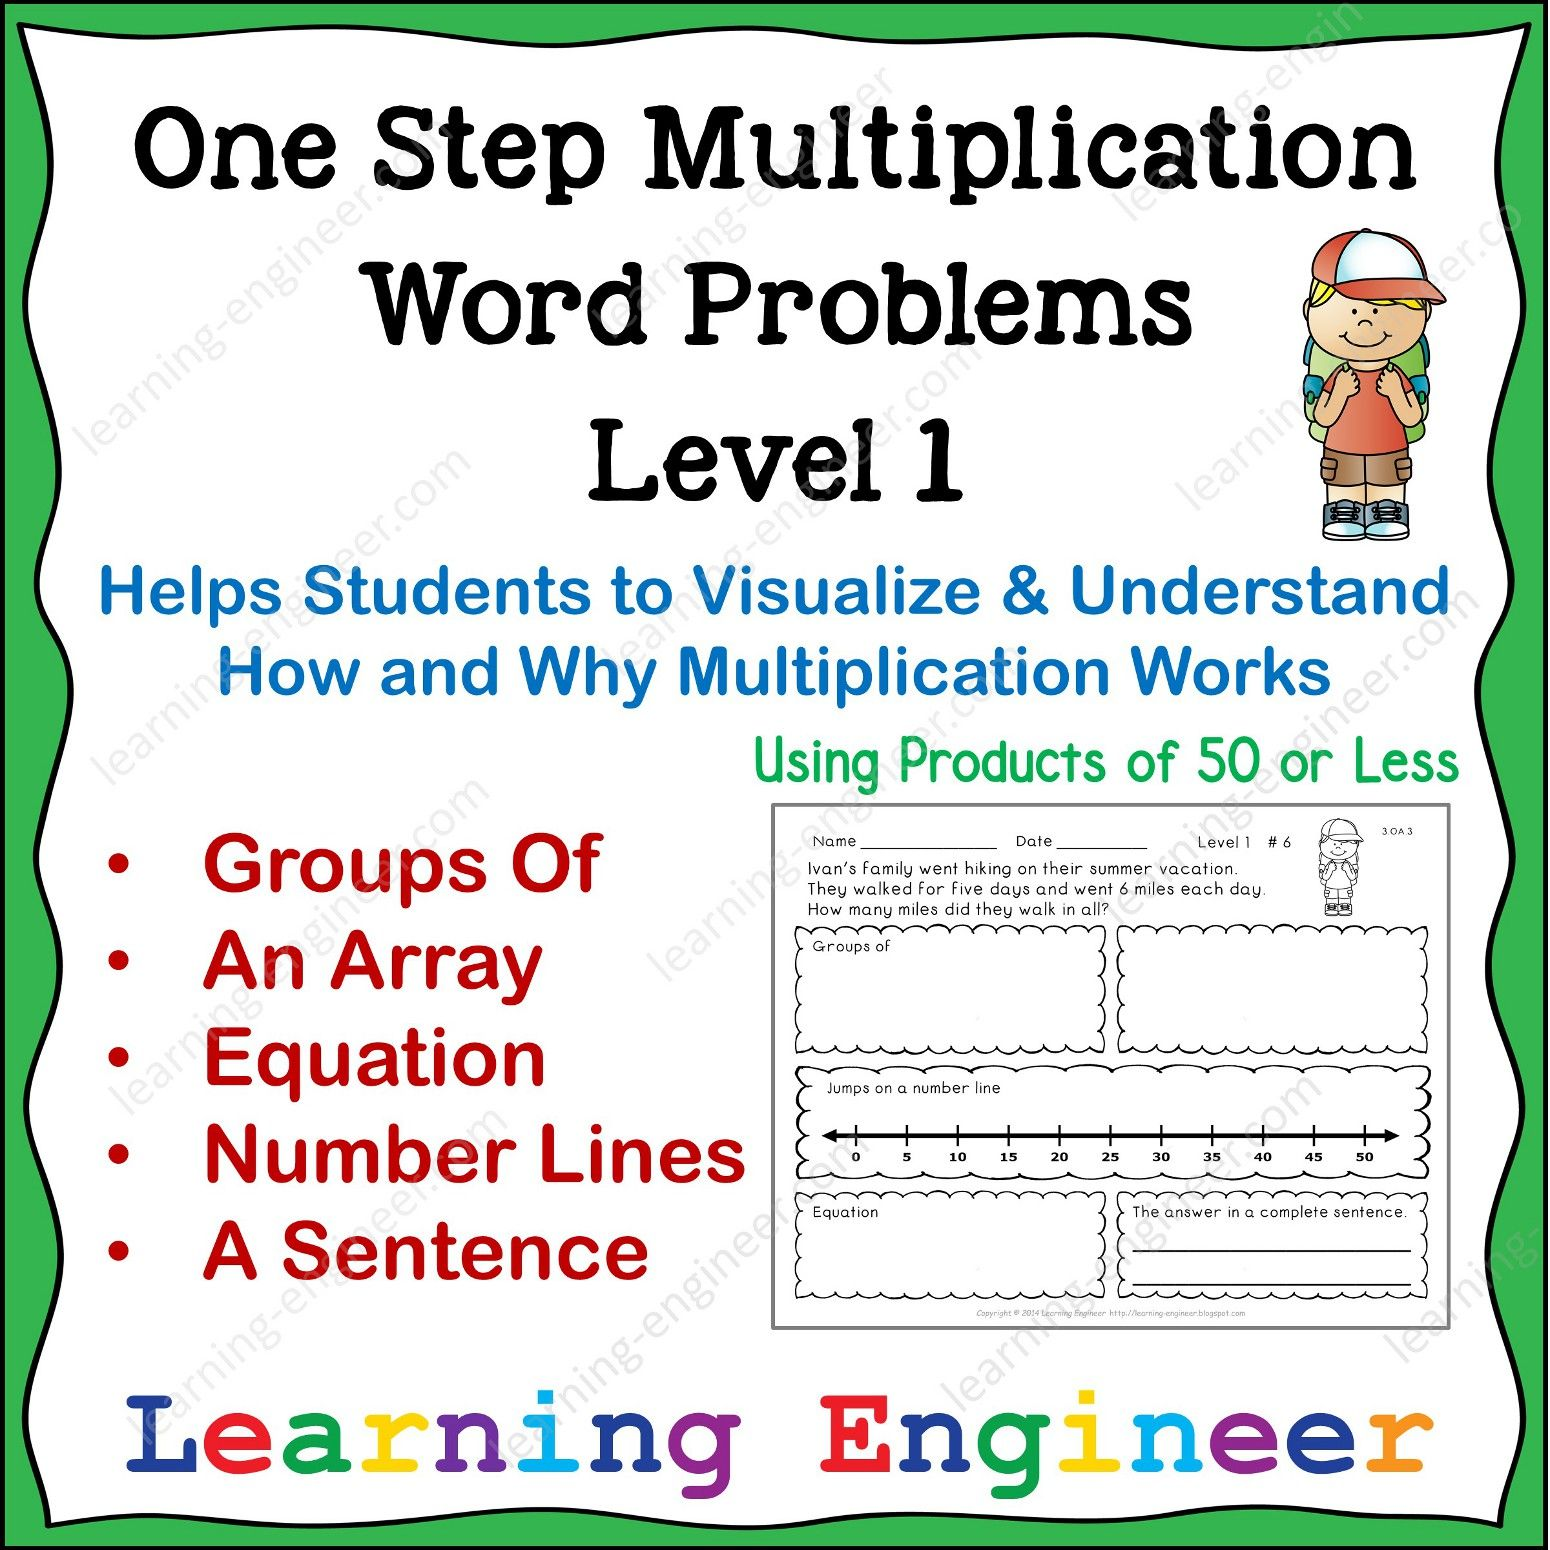 One Step Multiplication Word Problems Products Of 50 Or